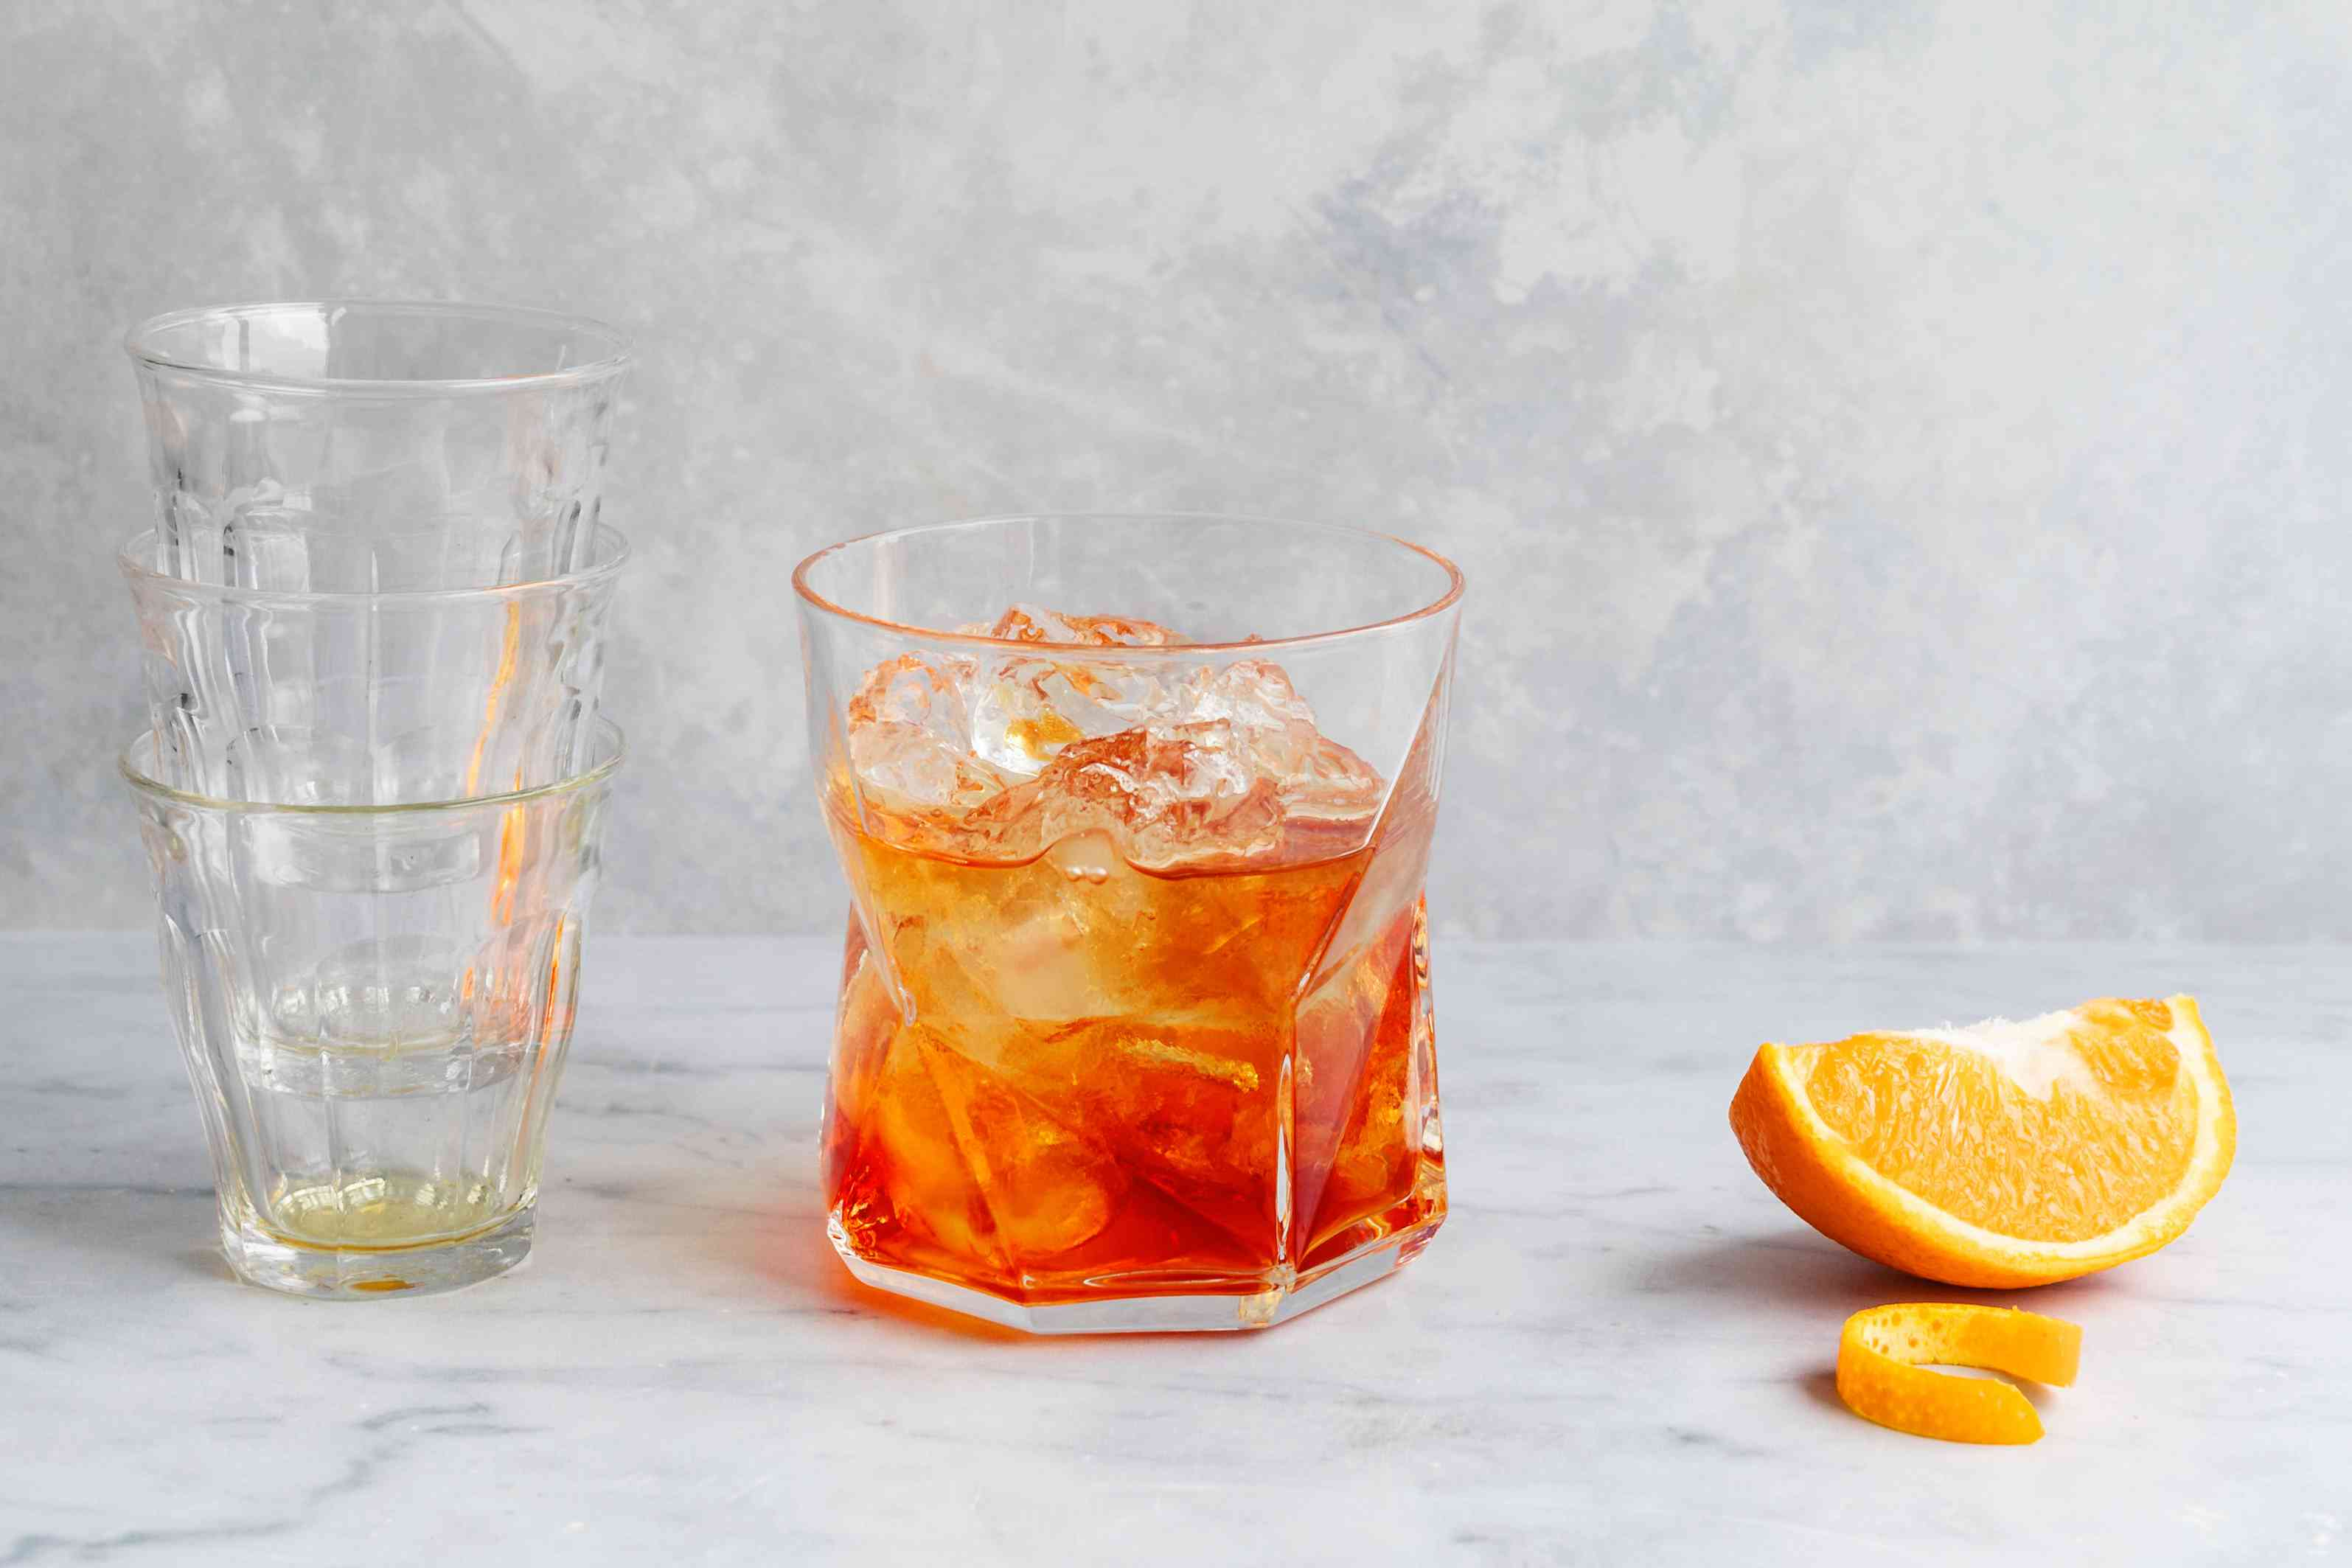 Negroni ingredients in glass